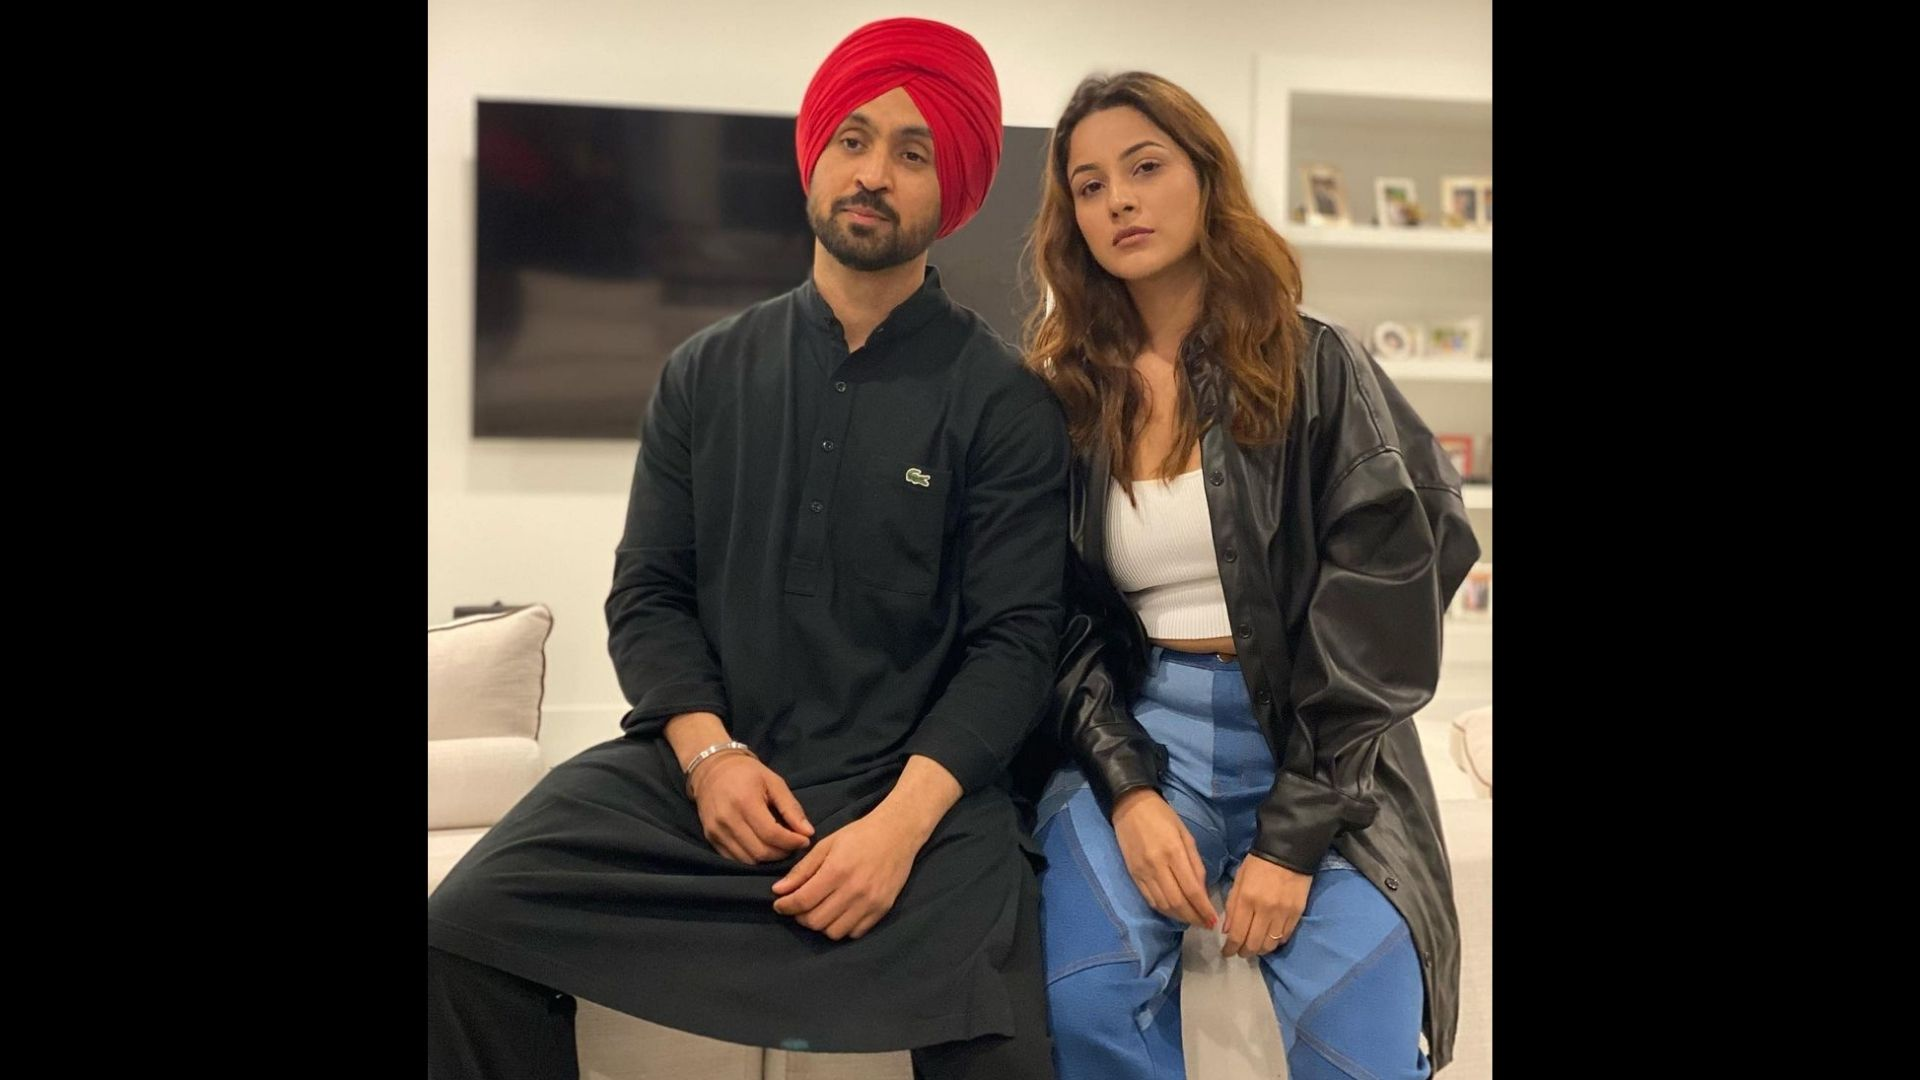 Is Shehnaaz Gill Back To Work After The Demise Of Sidharth Shukla? Diljit Dosanjh Shares A Video With Her From Honsla Rakh Promotions